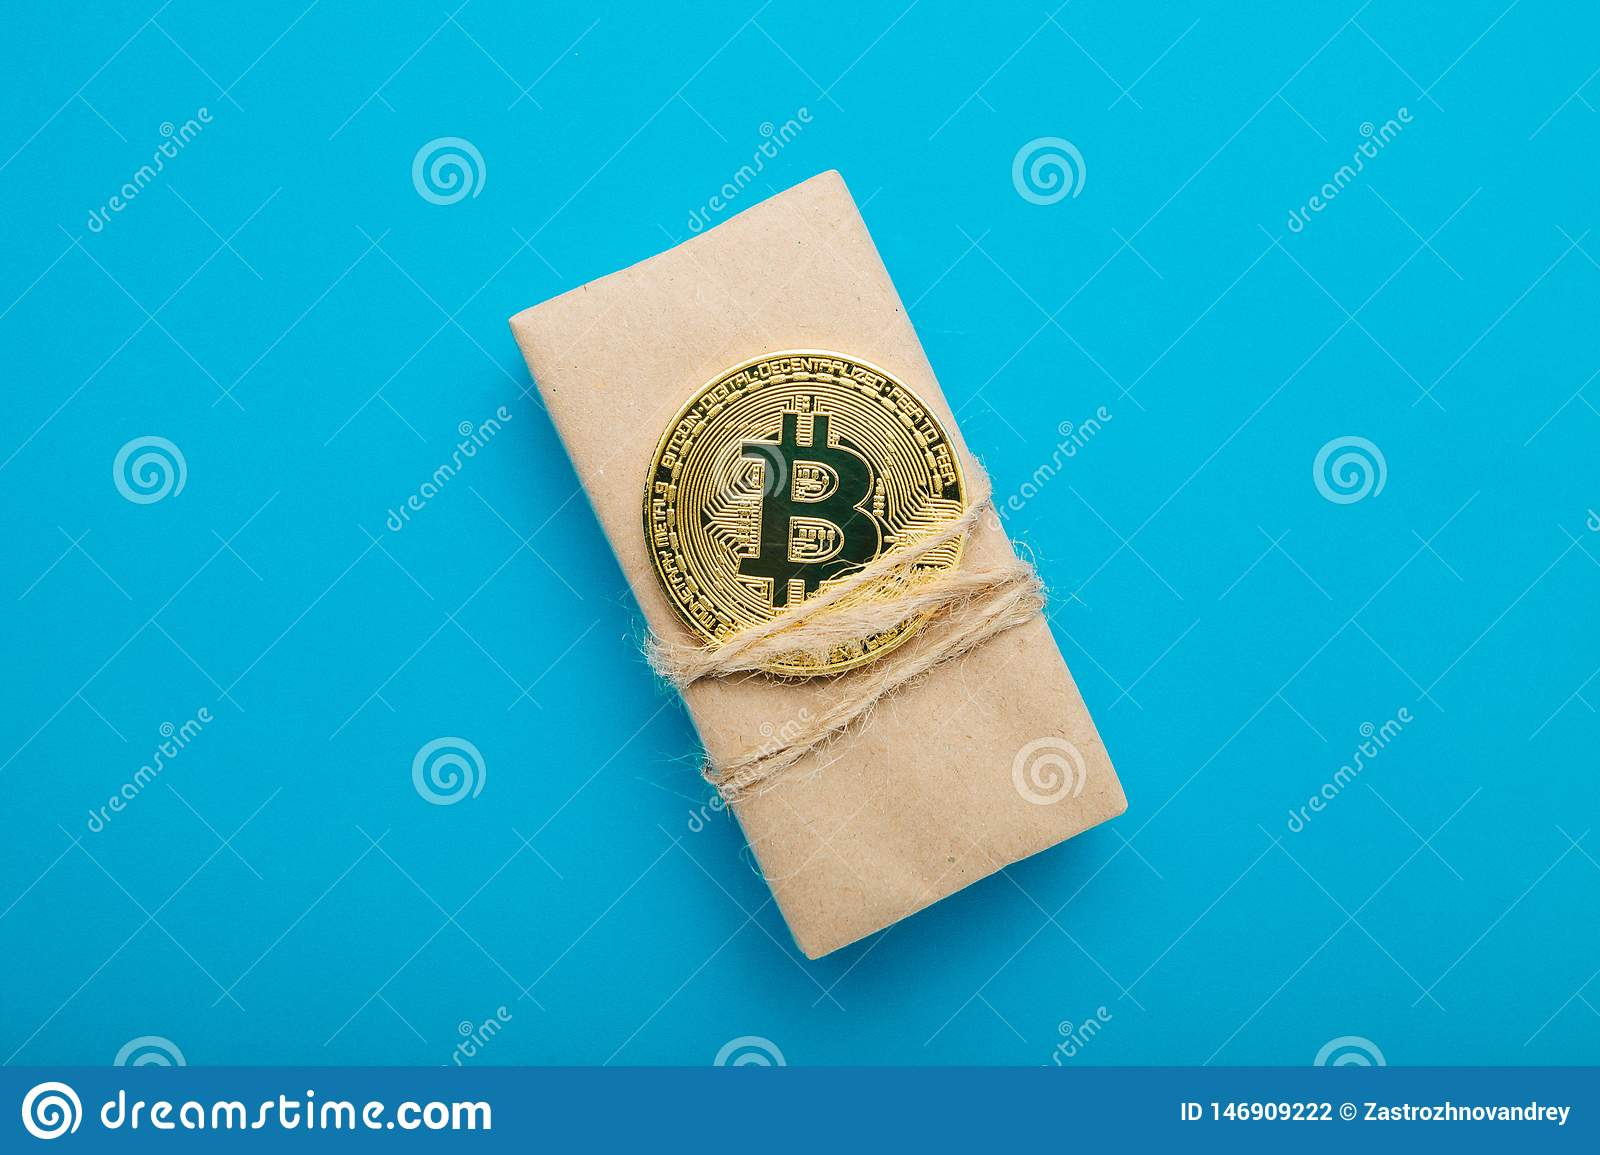 The concept of the sale of goods for crypto currency is bitcoin